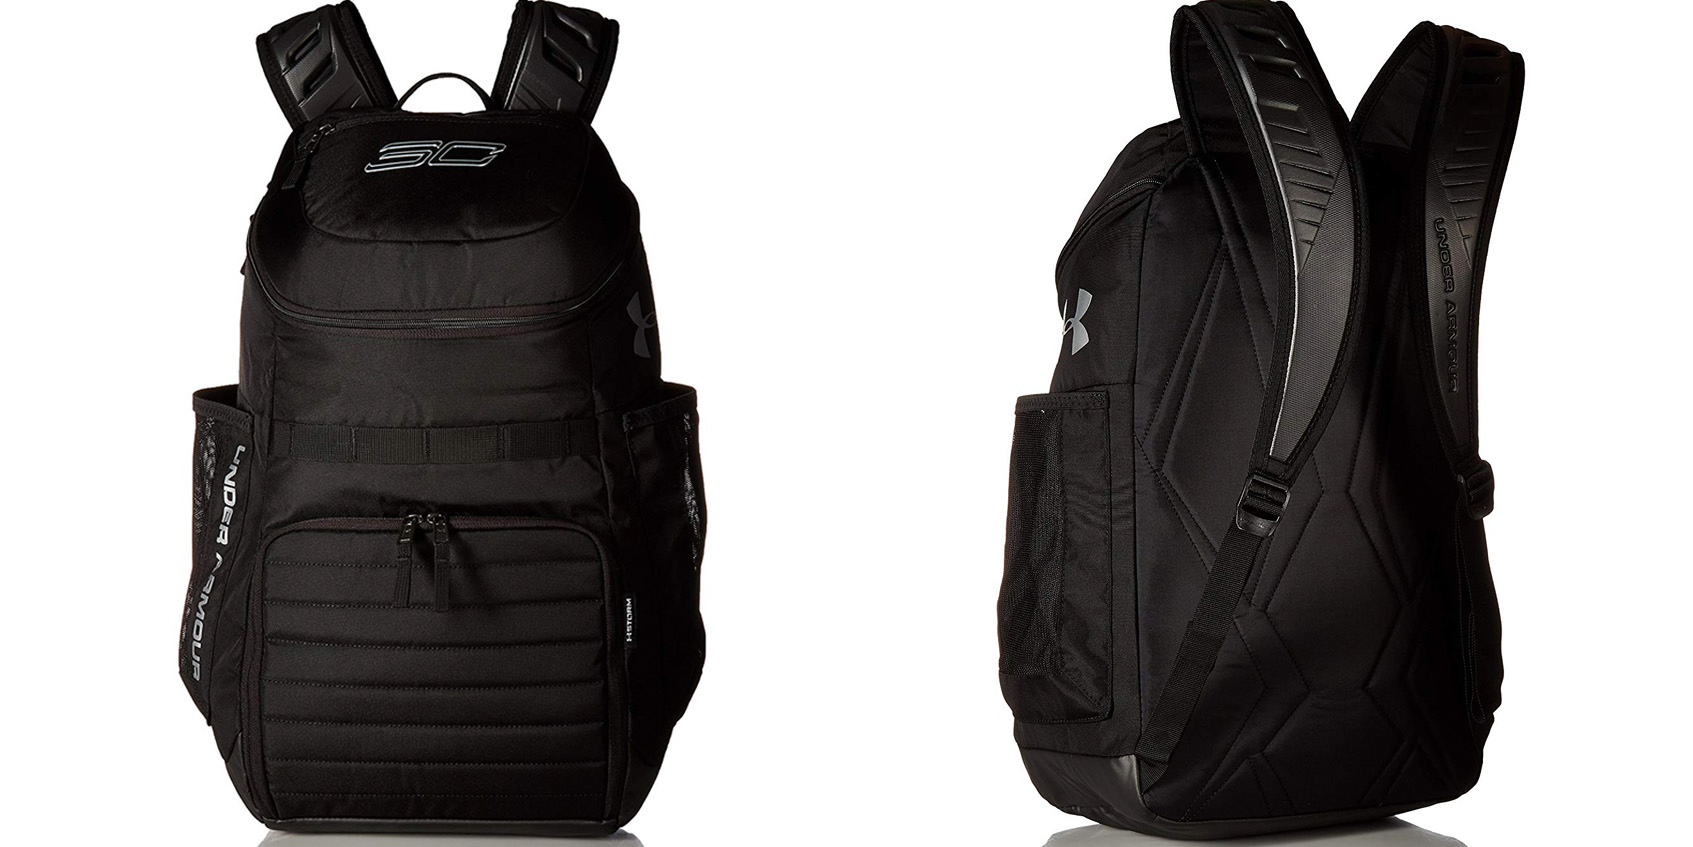 Protect your MacBook w/ Under Armour's Undeniable Backpack for $36 shipped (Reg. $70)